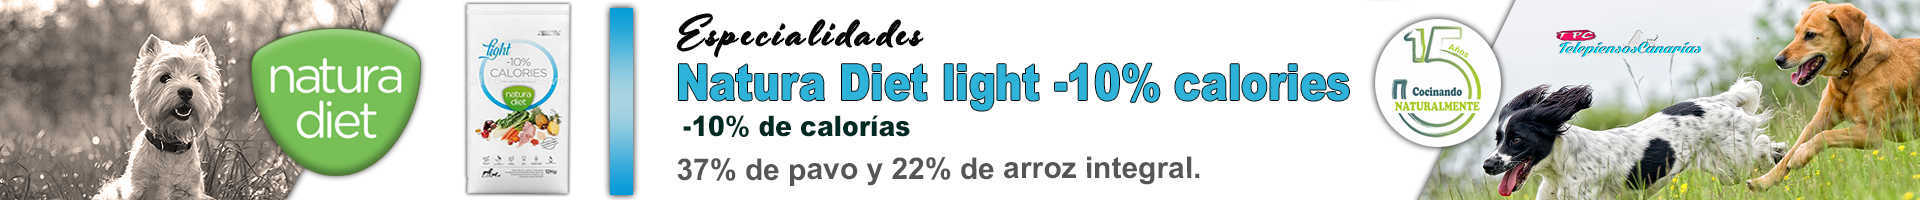 Natura diet light -10% de calorías, dieta natural y nutritiva